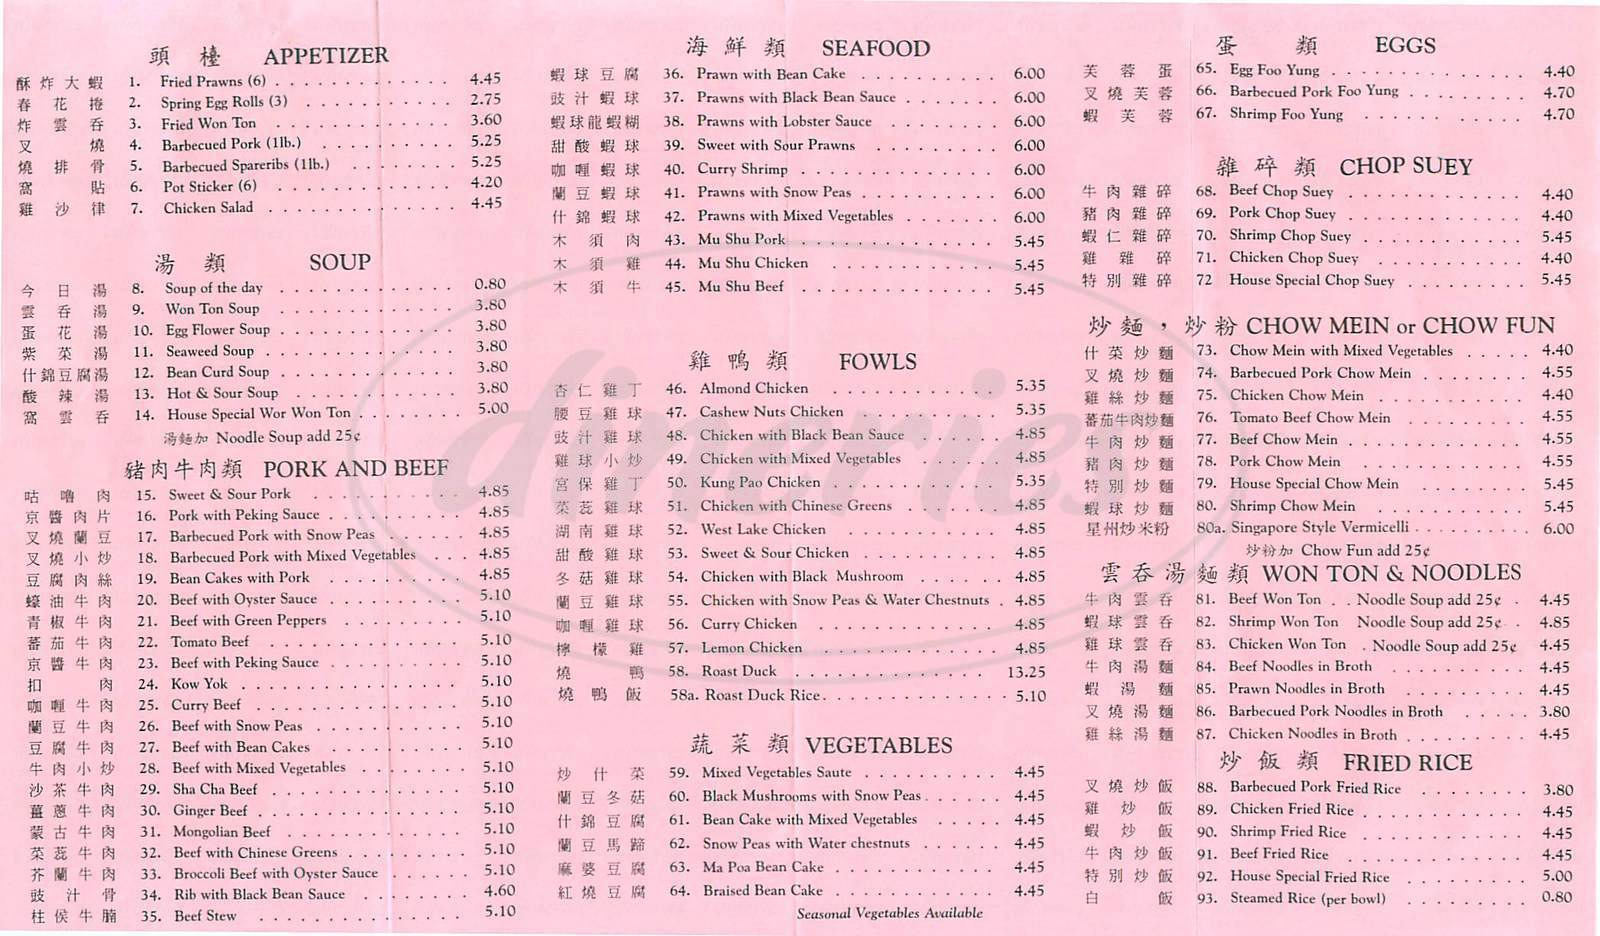 menu for Wing Fat Restaurant